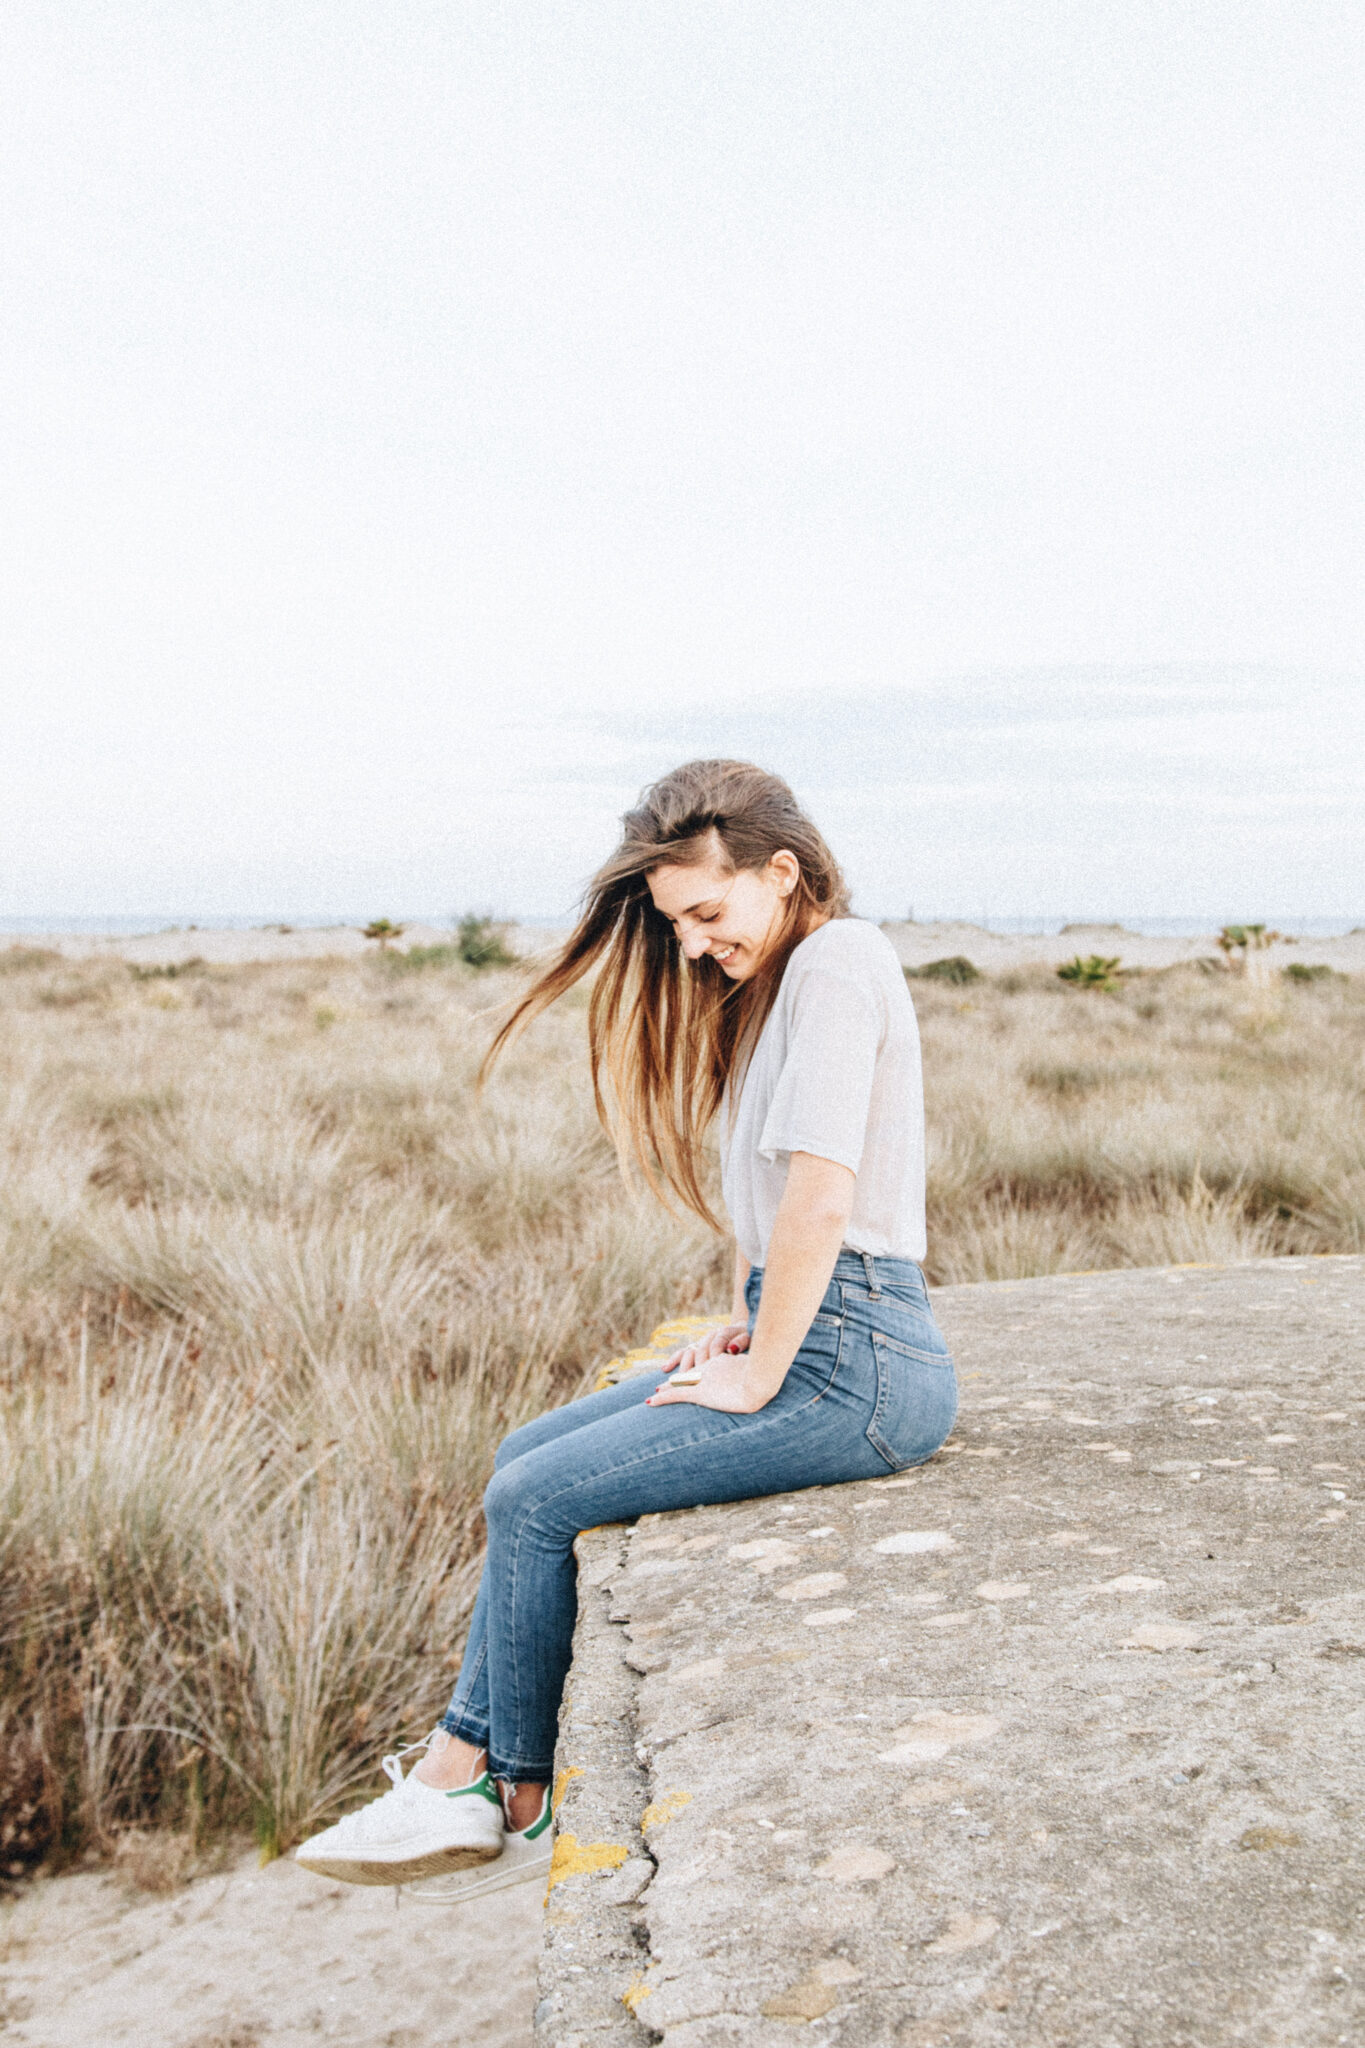 A girls sits on a rock ledge, behind her is wilderneess. She smiles and looks down. She appears to be very confident. This article covers how to revitalize your look and boost your confidence.